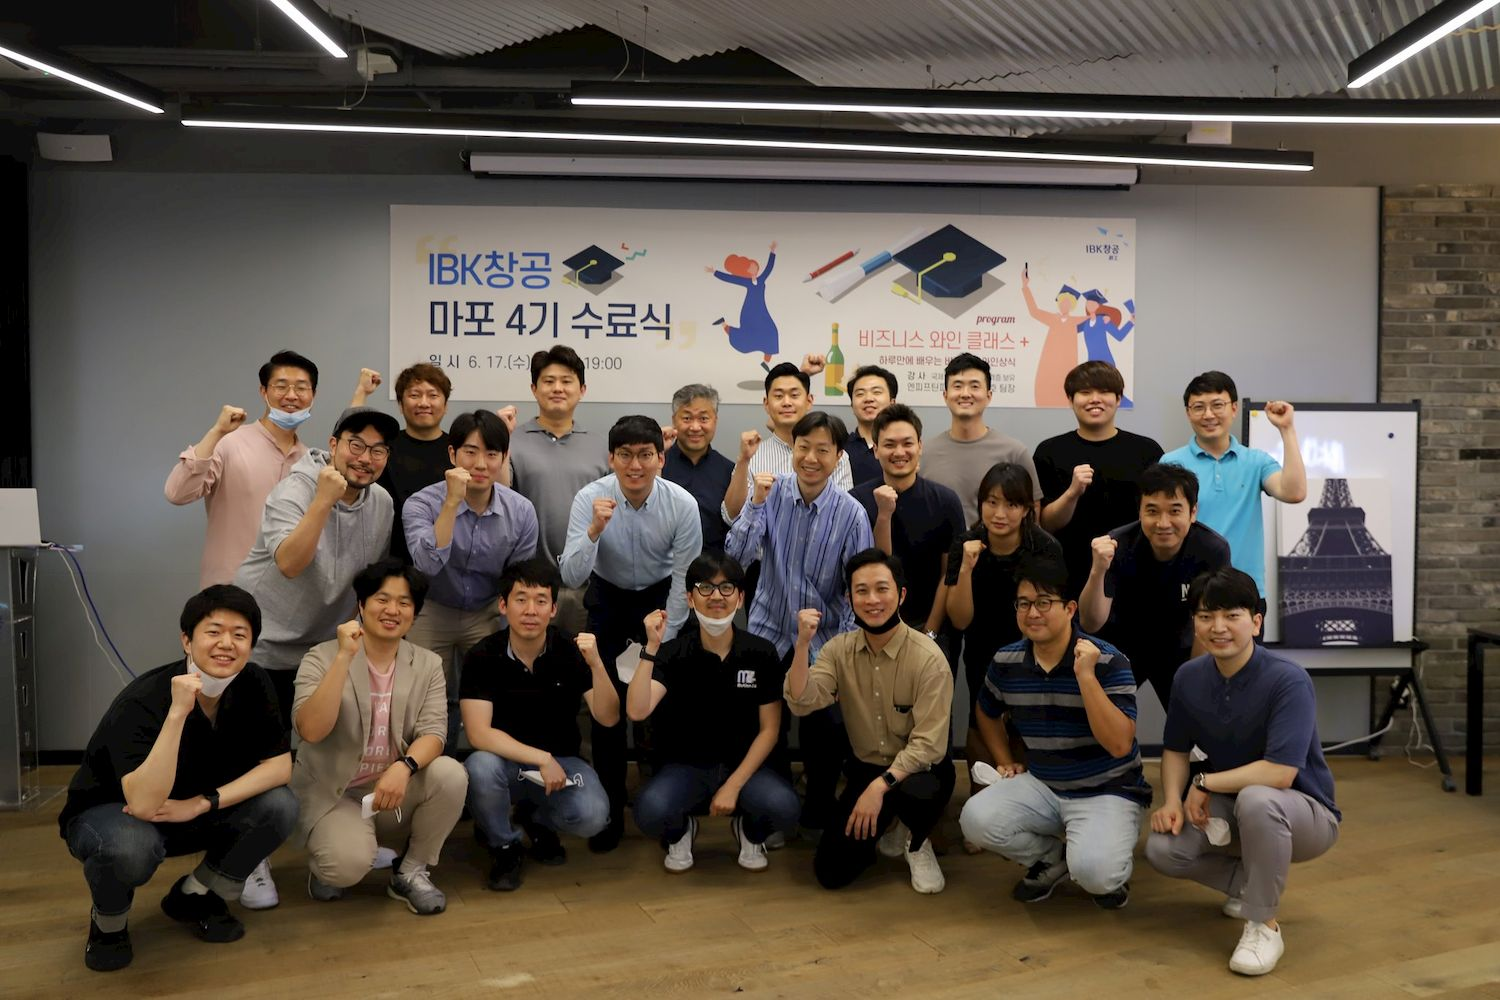 BluePrintLAB graduates from IBK Changgong's 4th Mapo Accelerator class